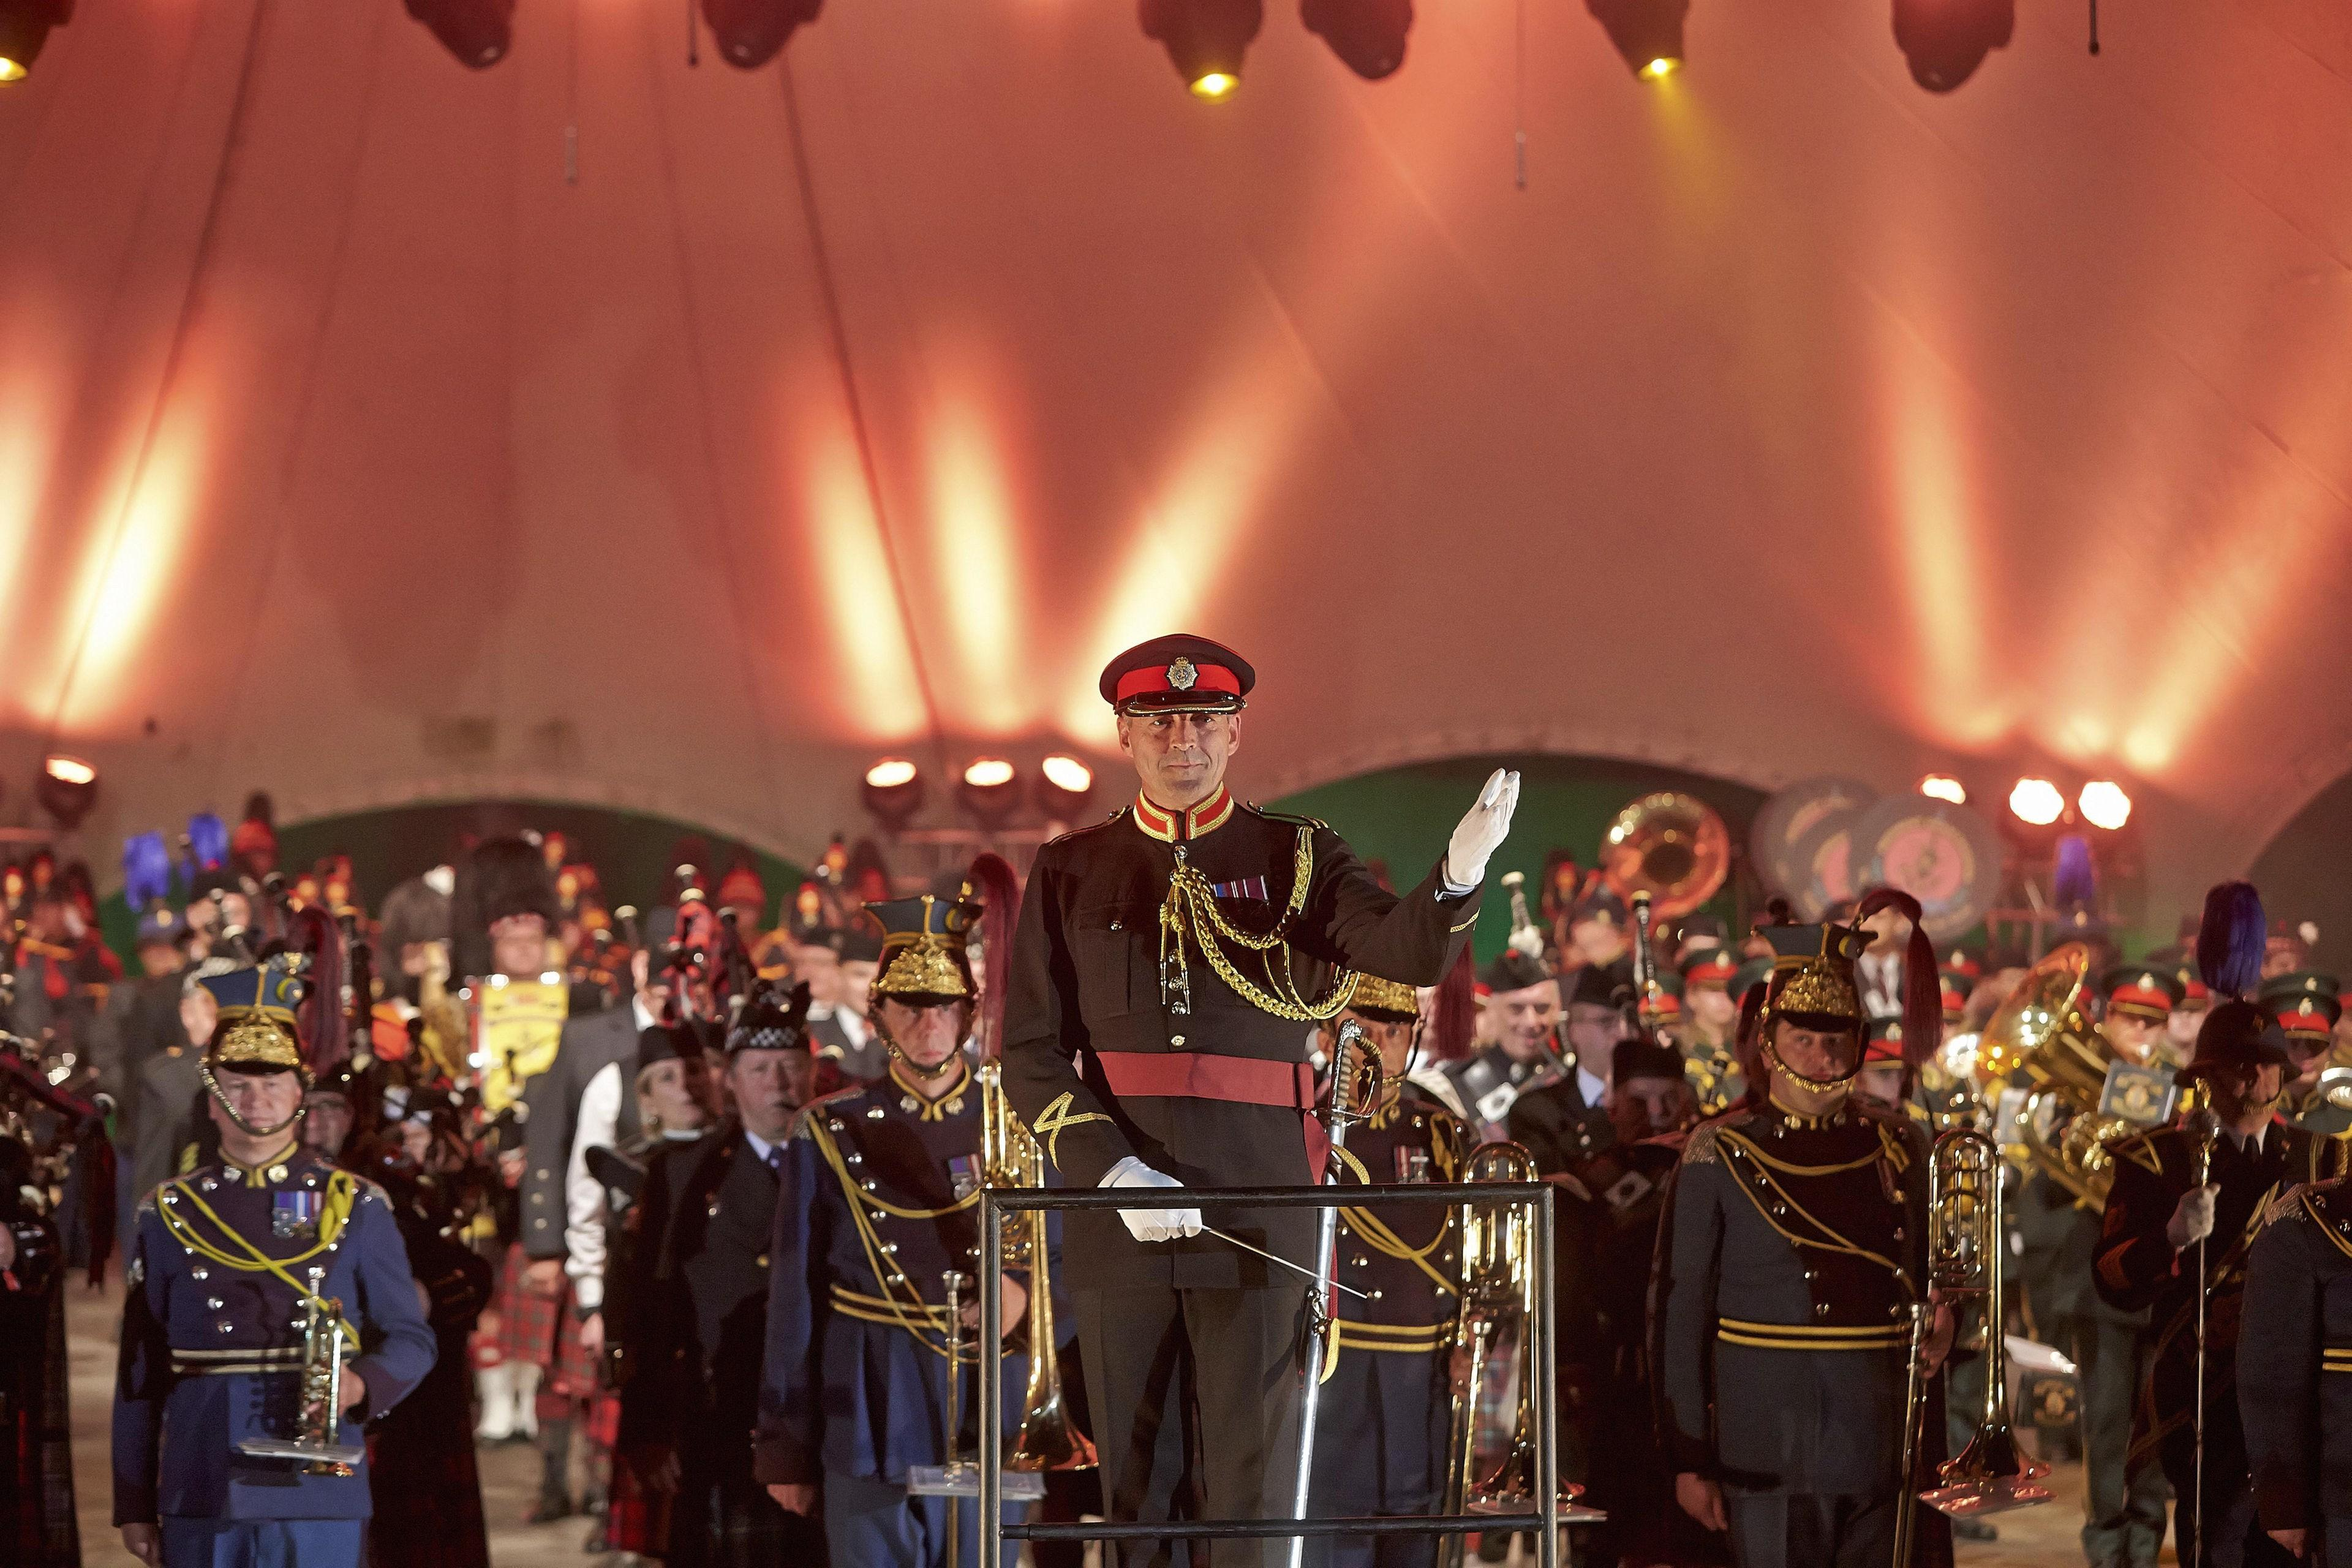 Loreley-Tattoo 2016 Military Music Festival Major Jason Griffith mit Blaskapelle Musical Director Edinburgh Tattoo (Foto: picture-alliance / Reportdienste, Picture Alliance)